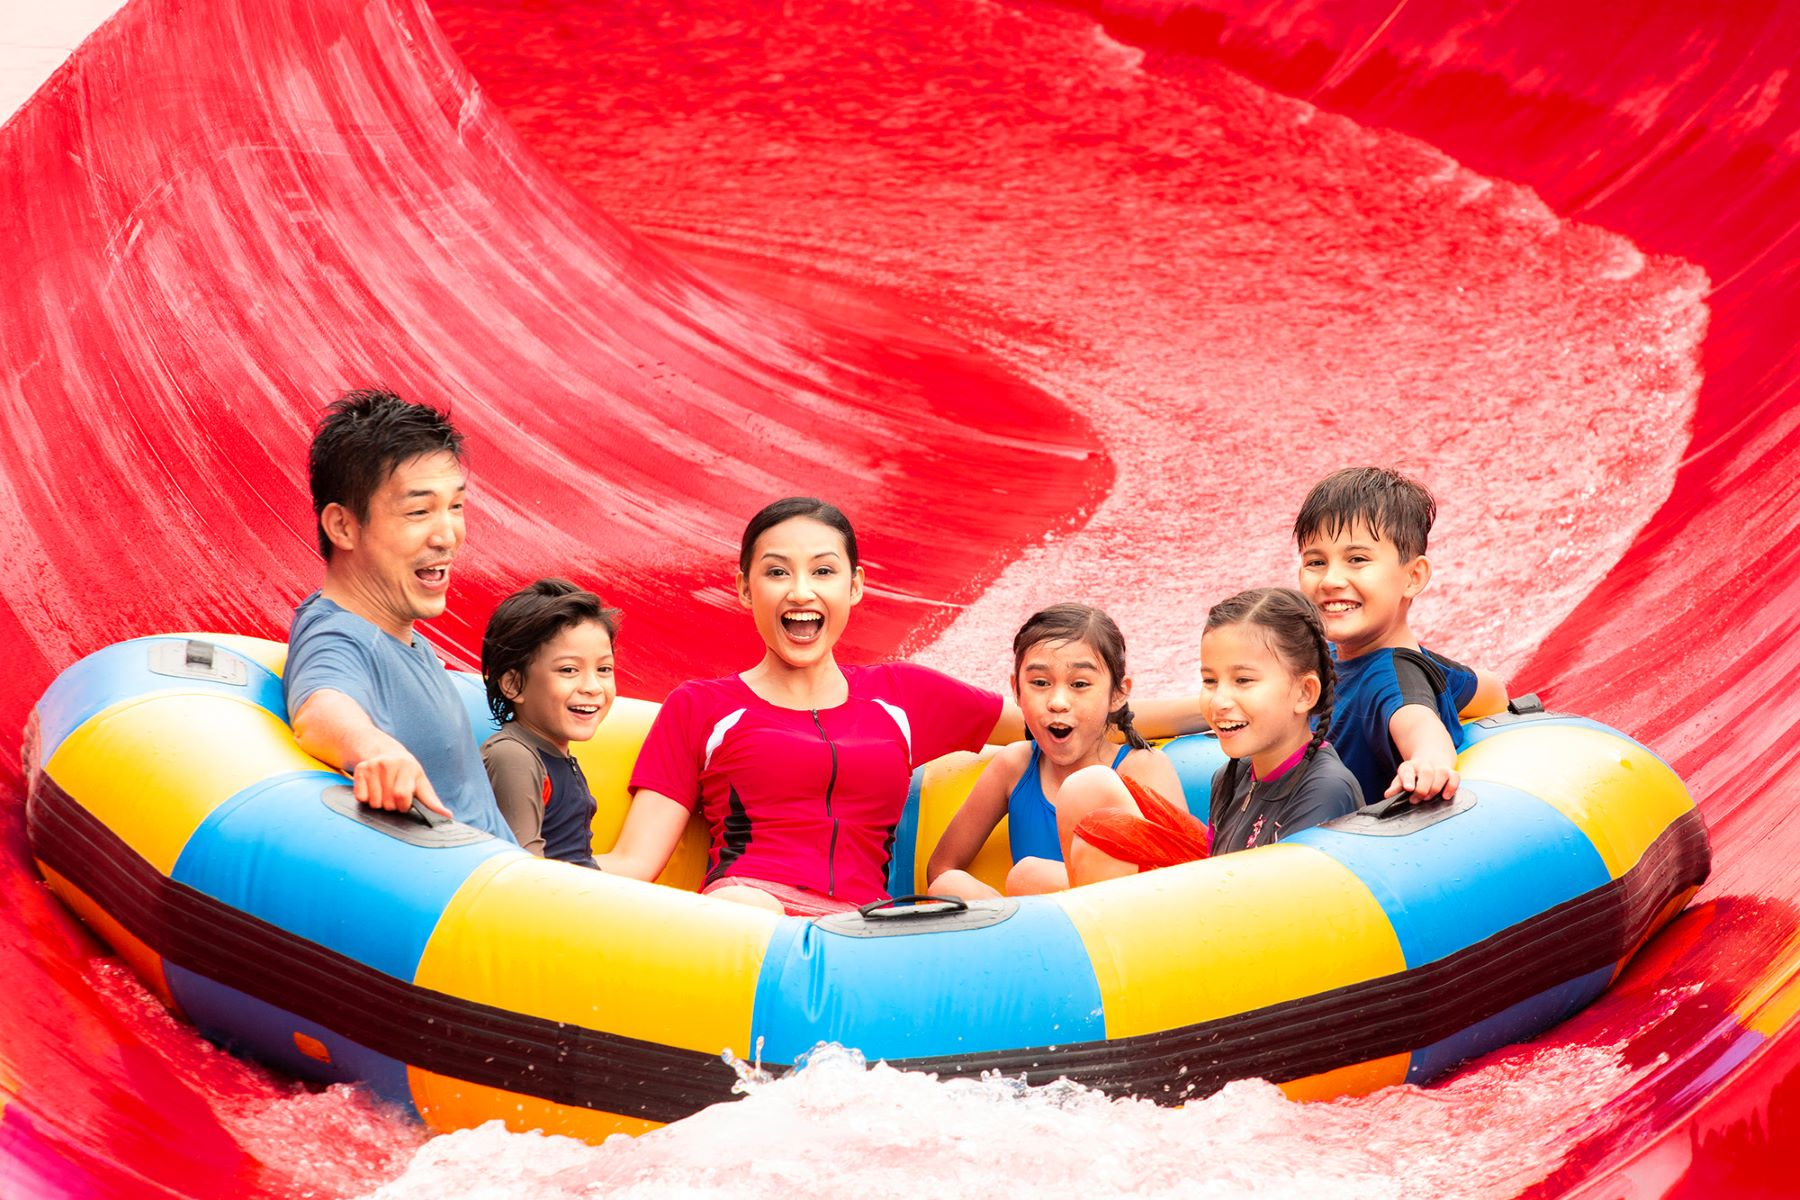 Red-Rush at LEGOLAND Water Park